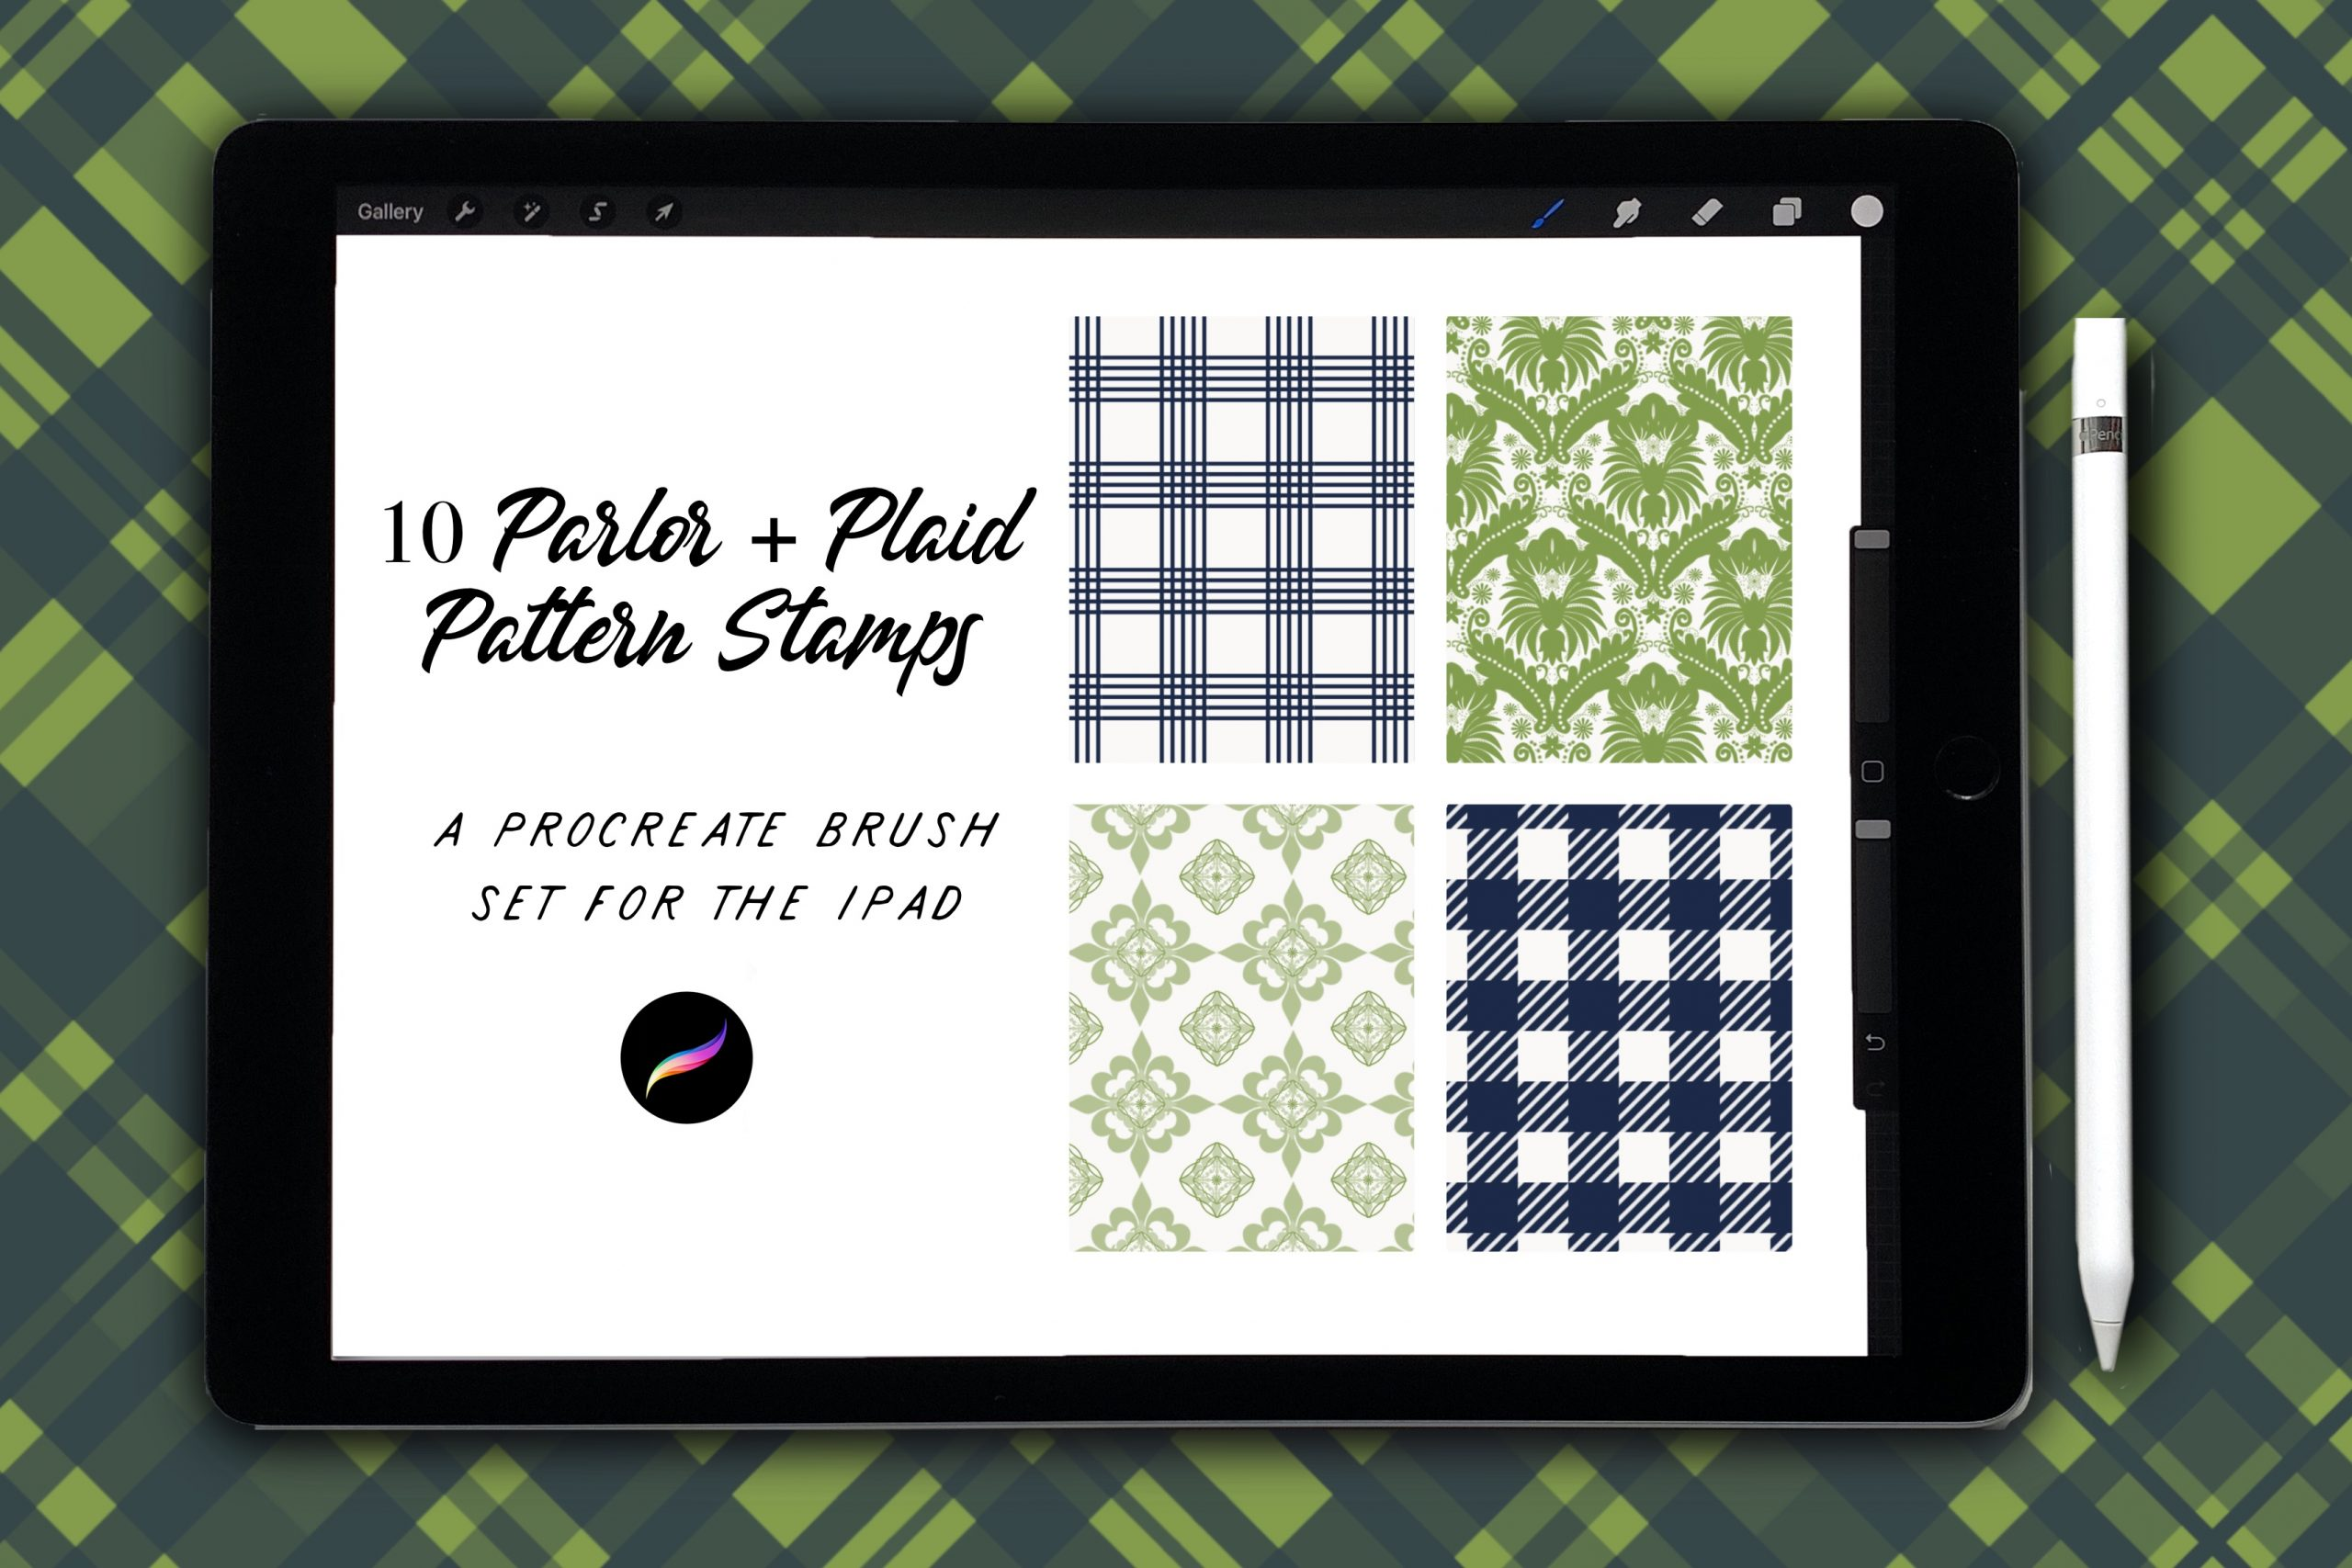 10 Parlor & Plaid Pattern Stamps